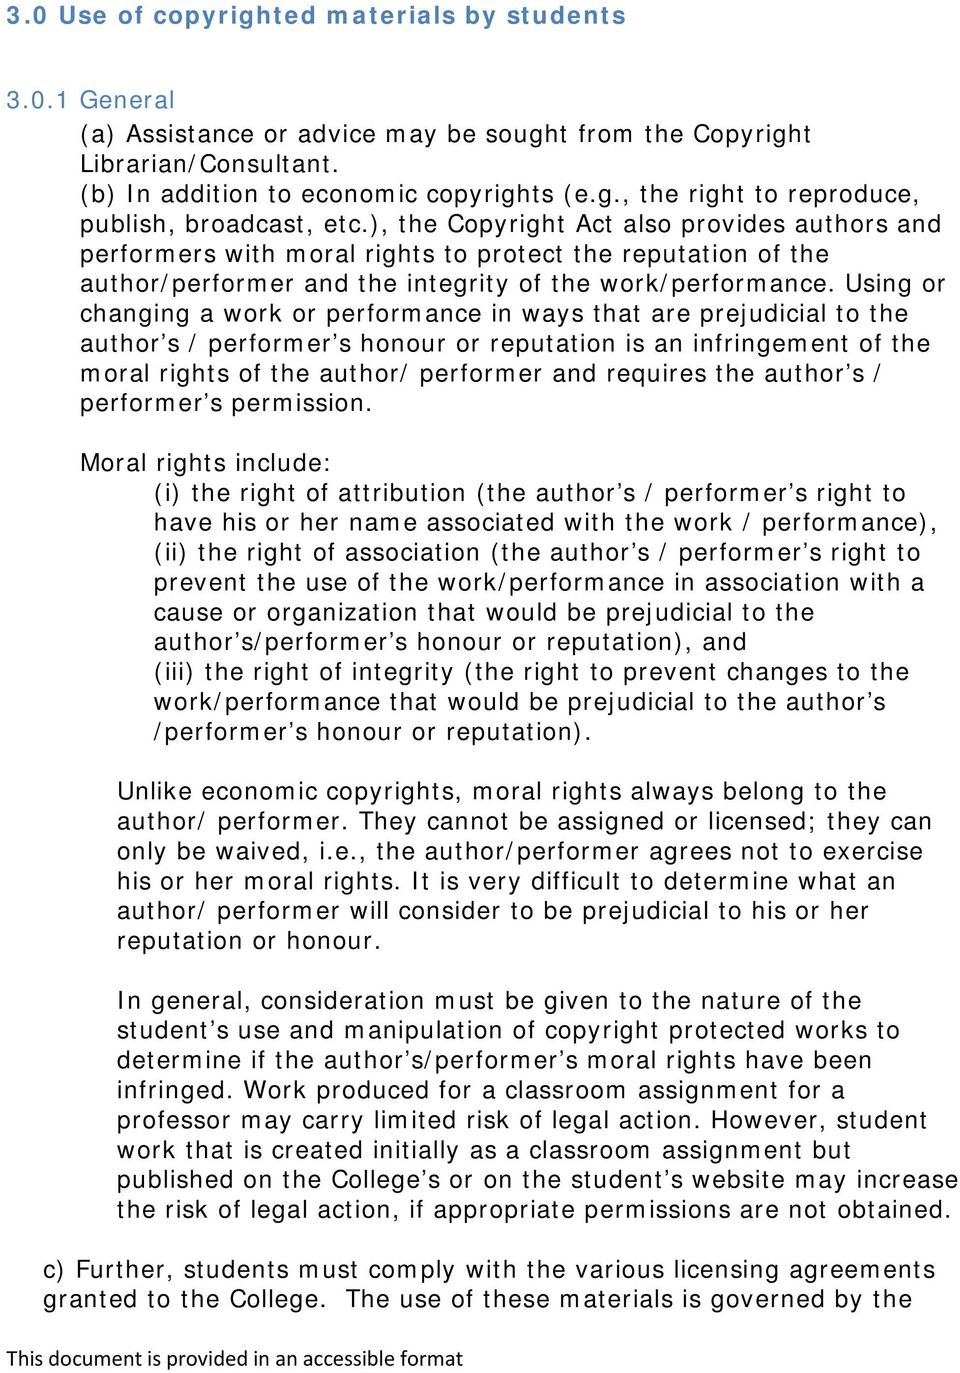 Using or changing a work or performance in ways that are prejudicial to the author s / performer s honour or reputation is an infringement of the moral rights of the author/ performer and requires